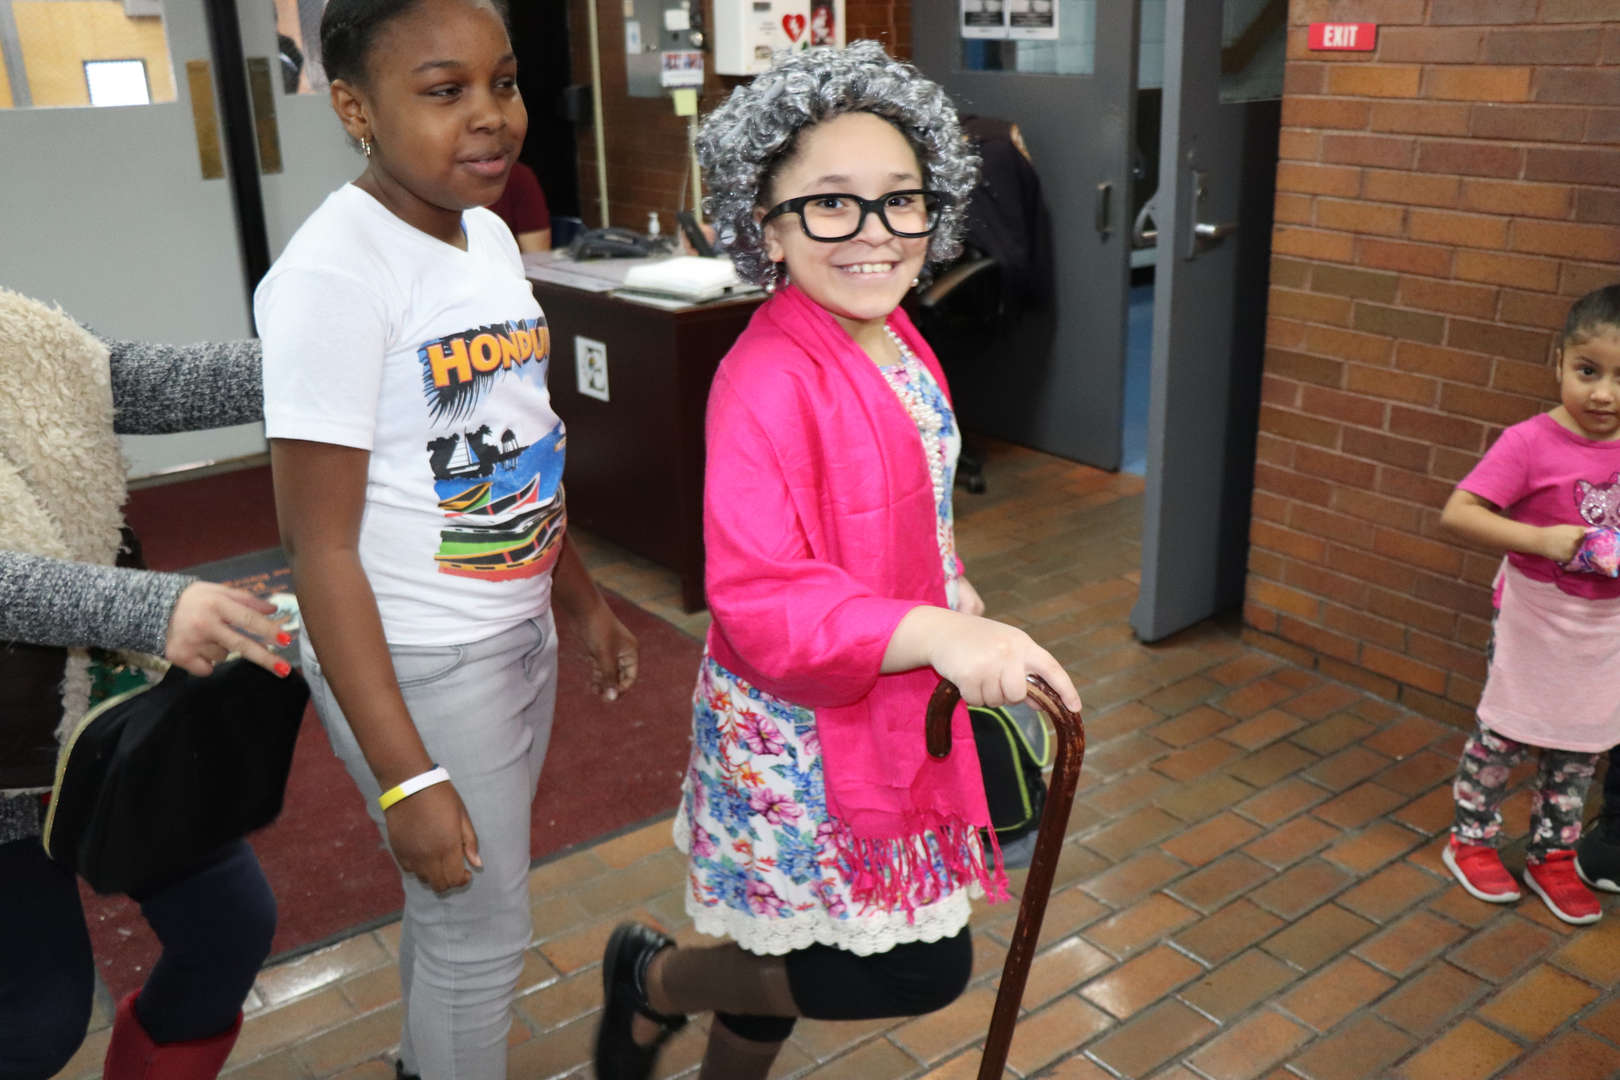 Student dressed like she is 100.